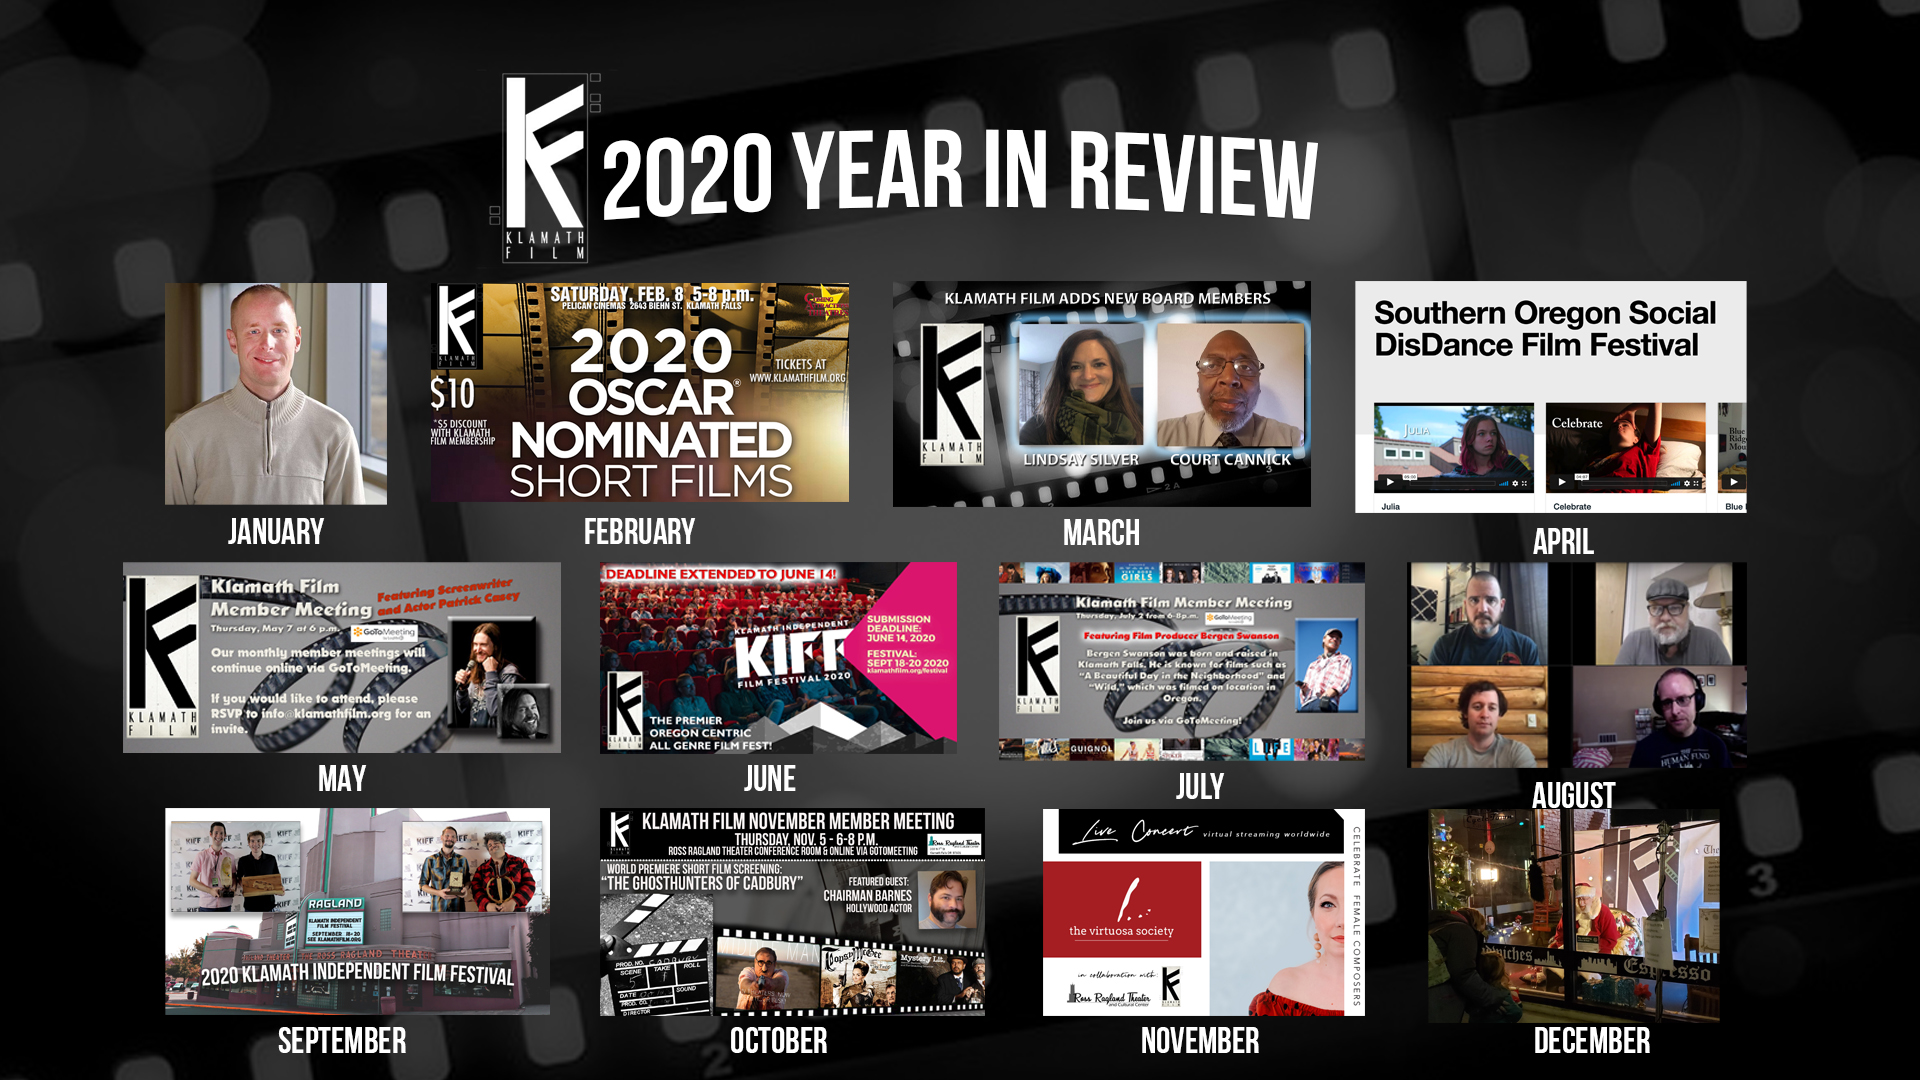 Klamath Film's year in review